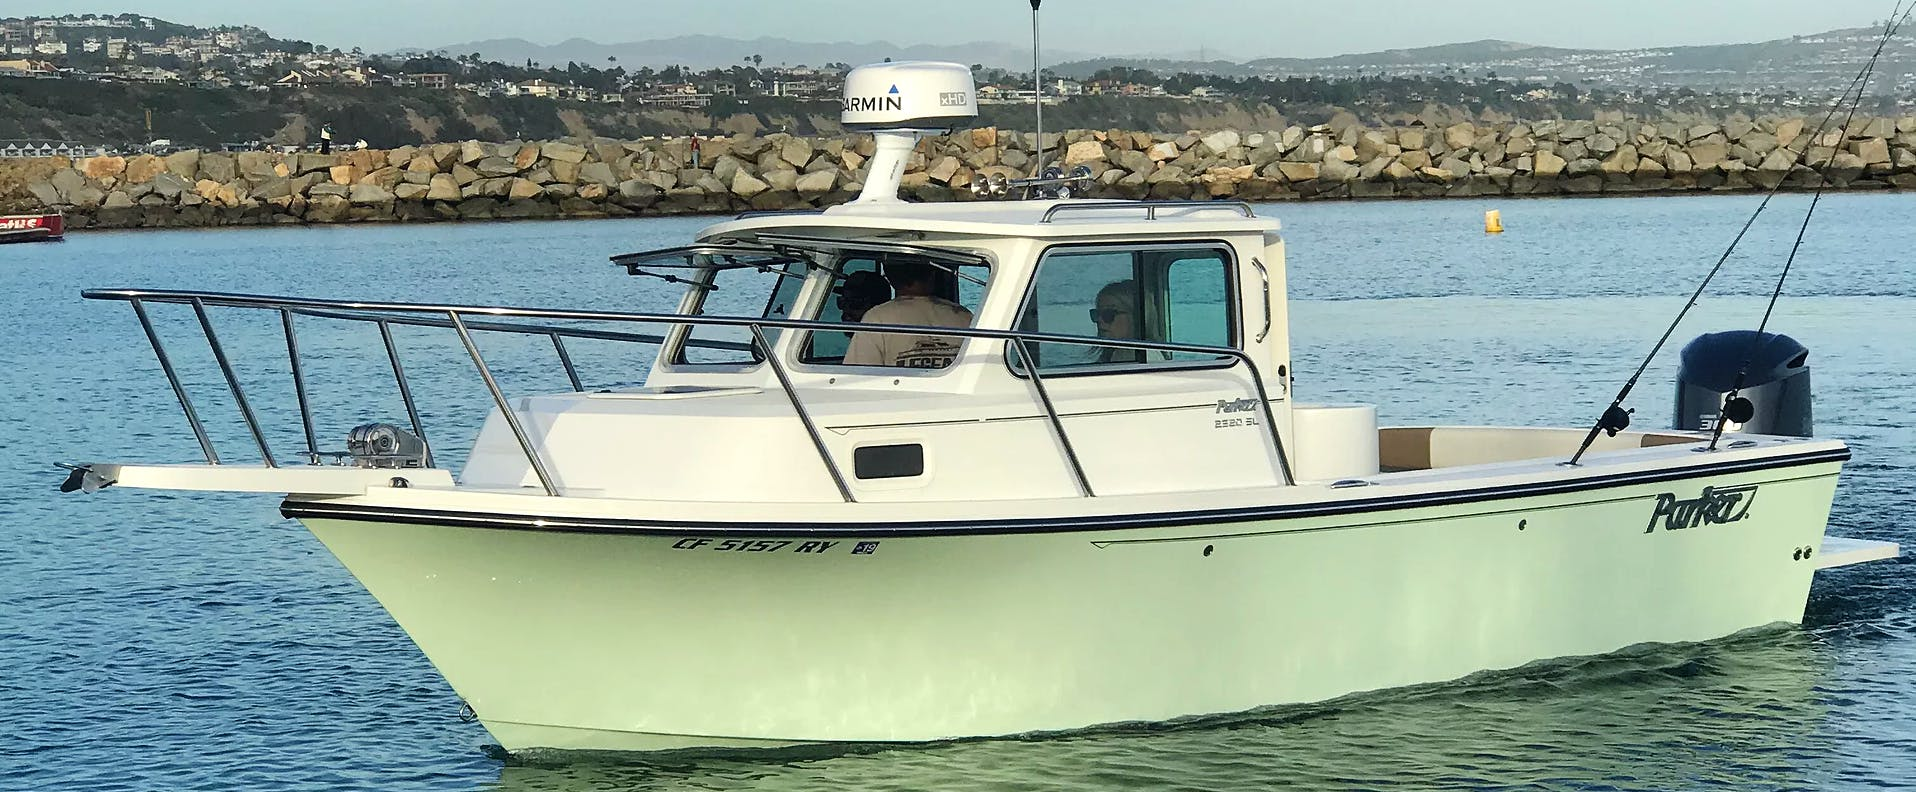 Image of the Boardroom II boat